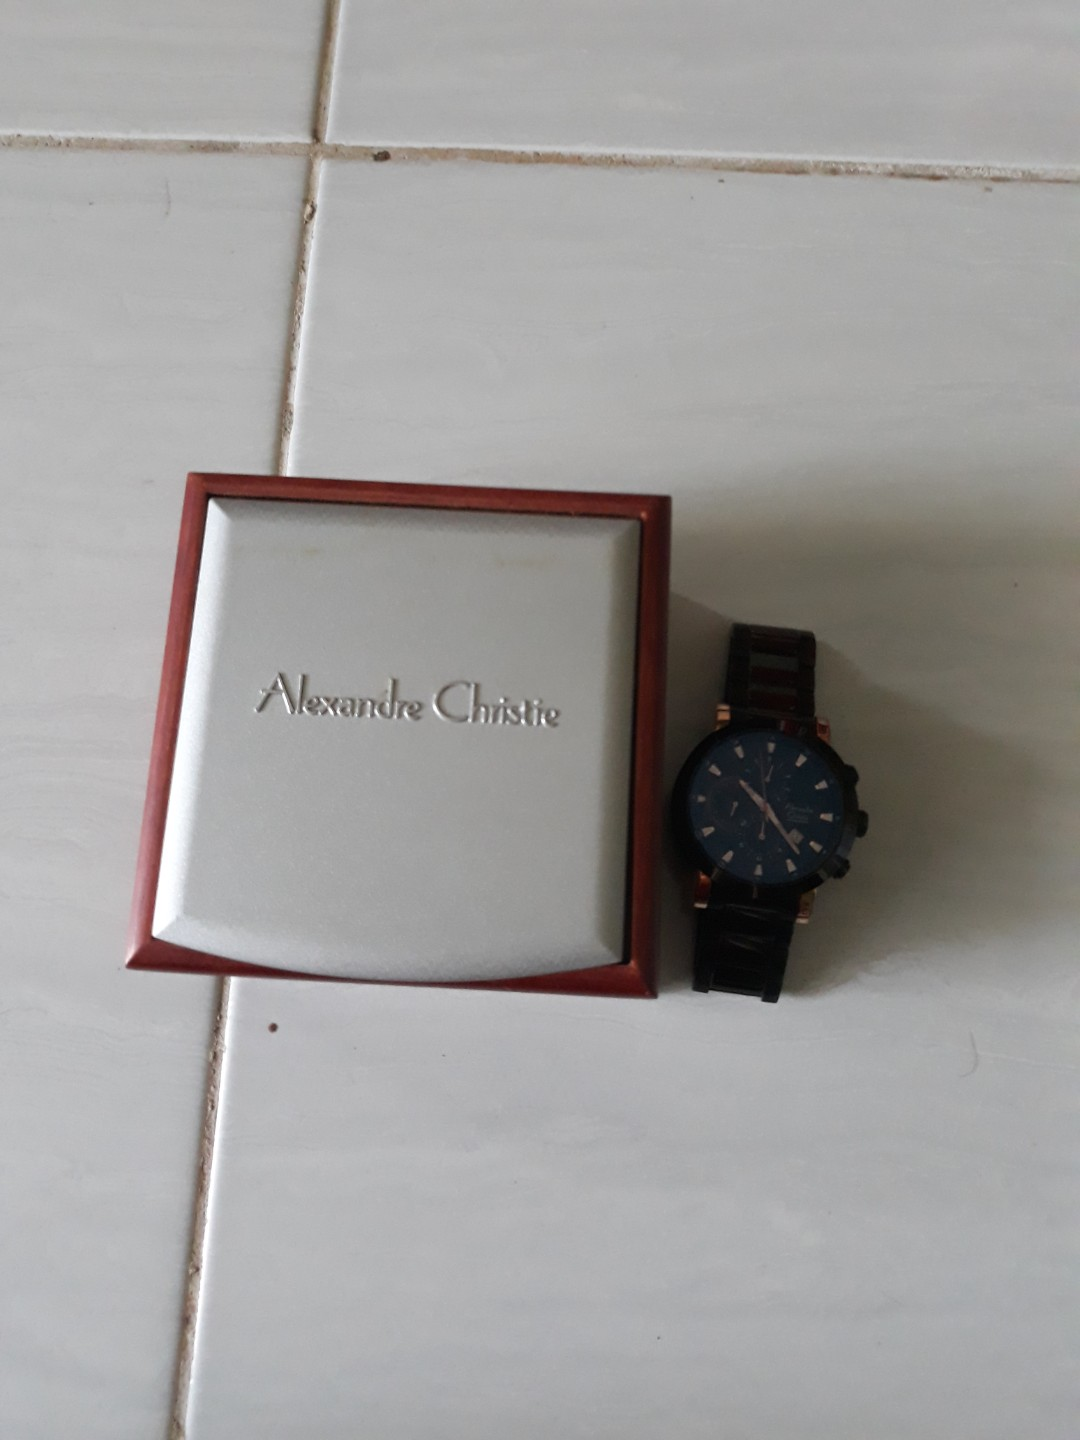 Harga Jual Jam Tangan Expedition Bekas 850000 Harley Davidson Hd Pria 6631 Black Orange Triple Time Original Alexander Christie Preloved Fesyen Di Carousell